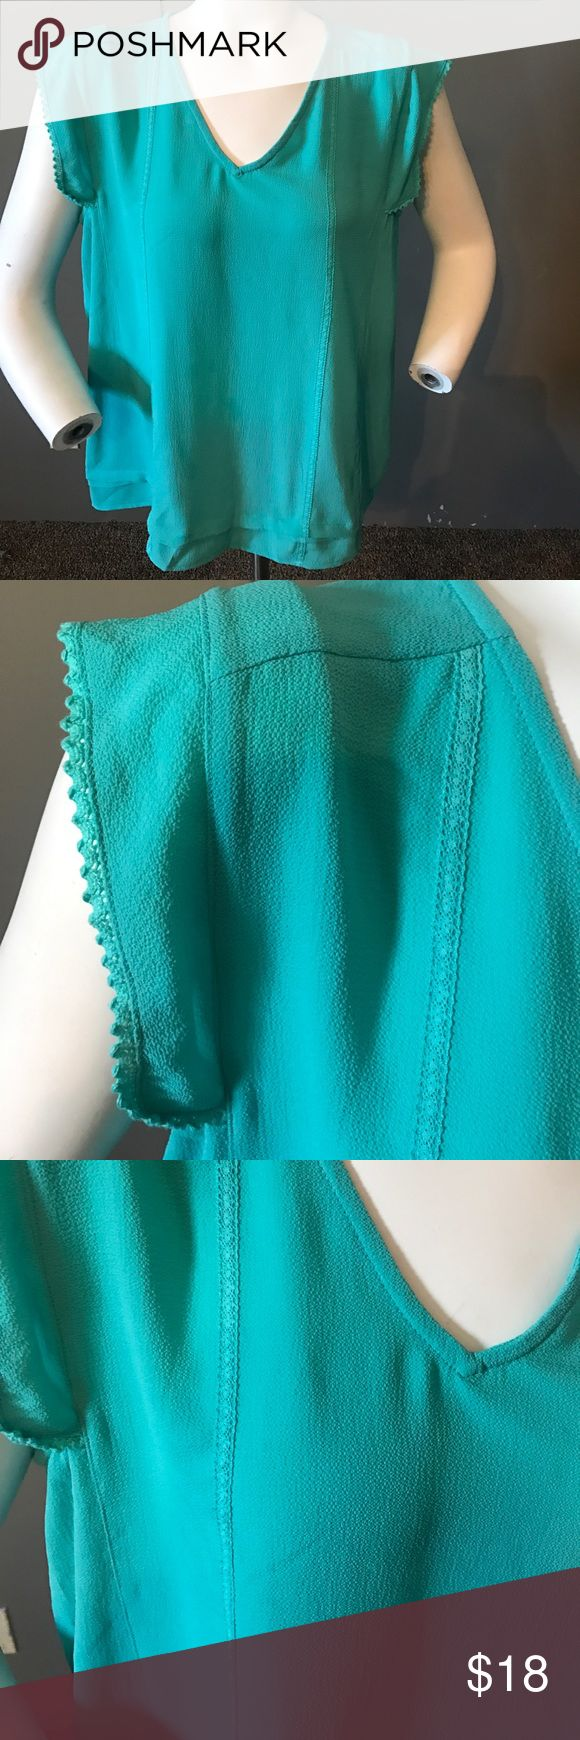 Papermoon Teal Blouse. Stitch fix Teal blouse crochet detail on the sleeves. XL 95% polyester 5% spandex. Tag was cut in half shown in the last picture Papermoon Tops Blouses